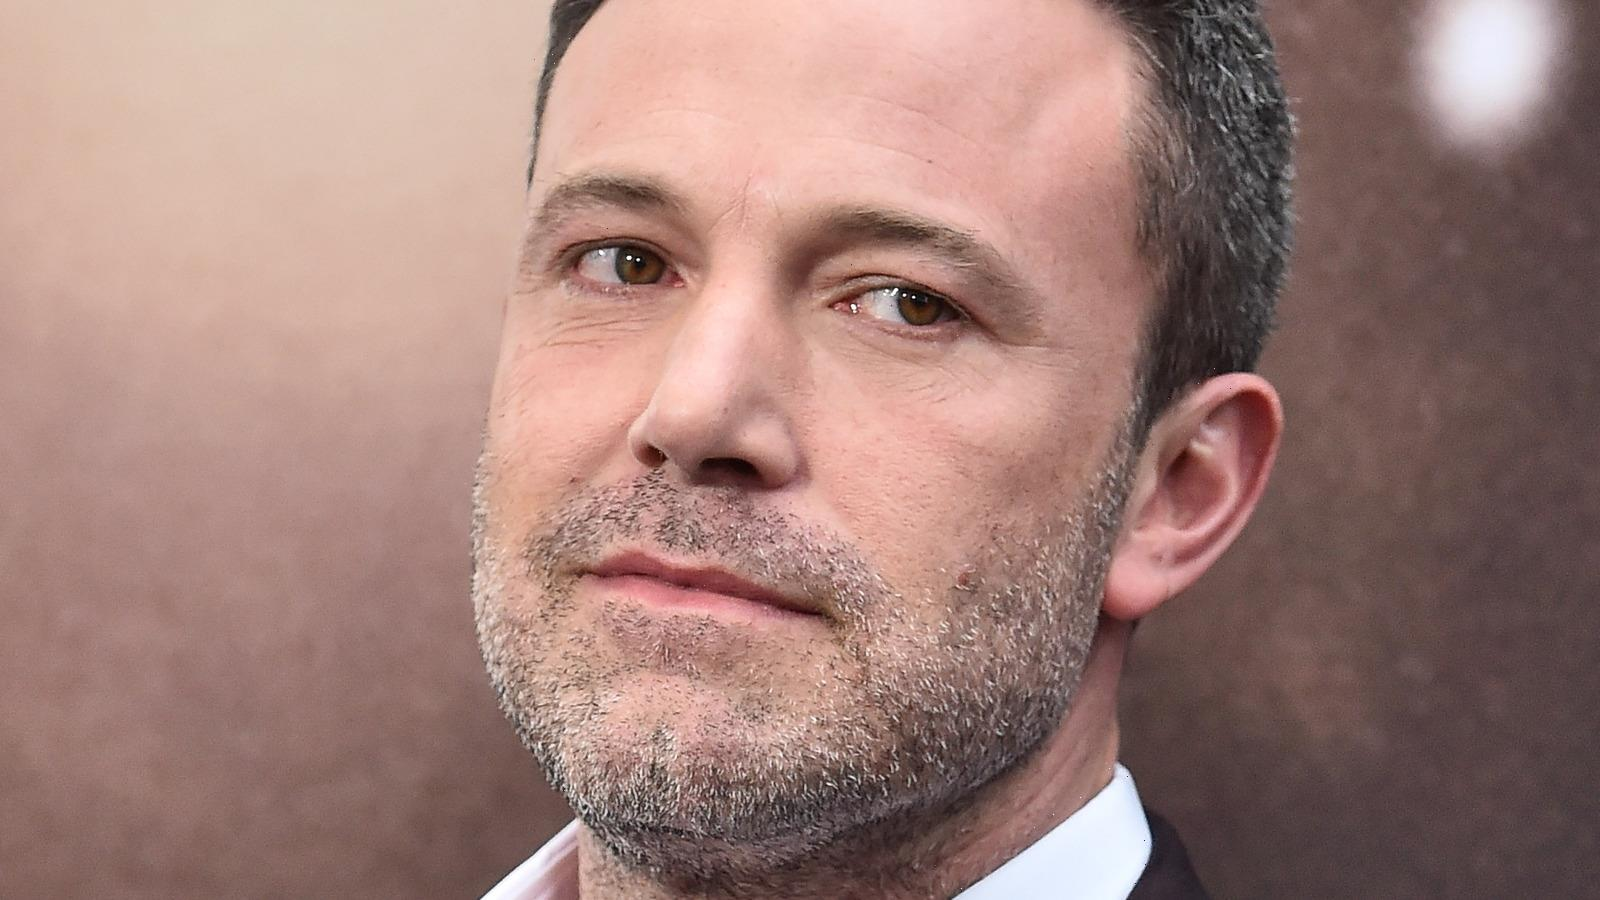 Why Ben Affleck's Secret Dating Video Is Causing Such A Stir